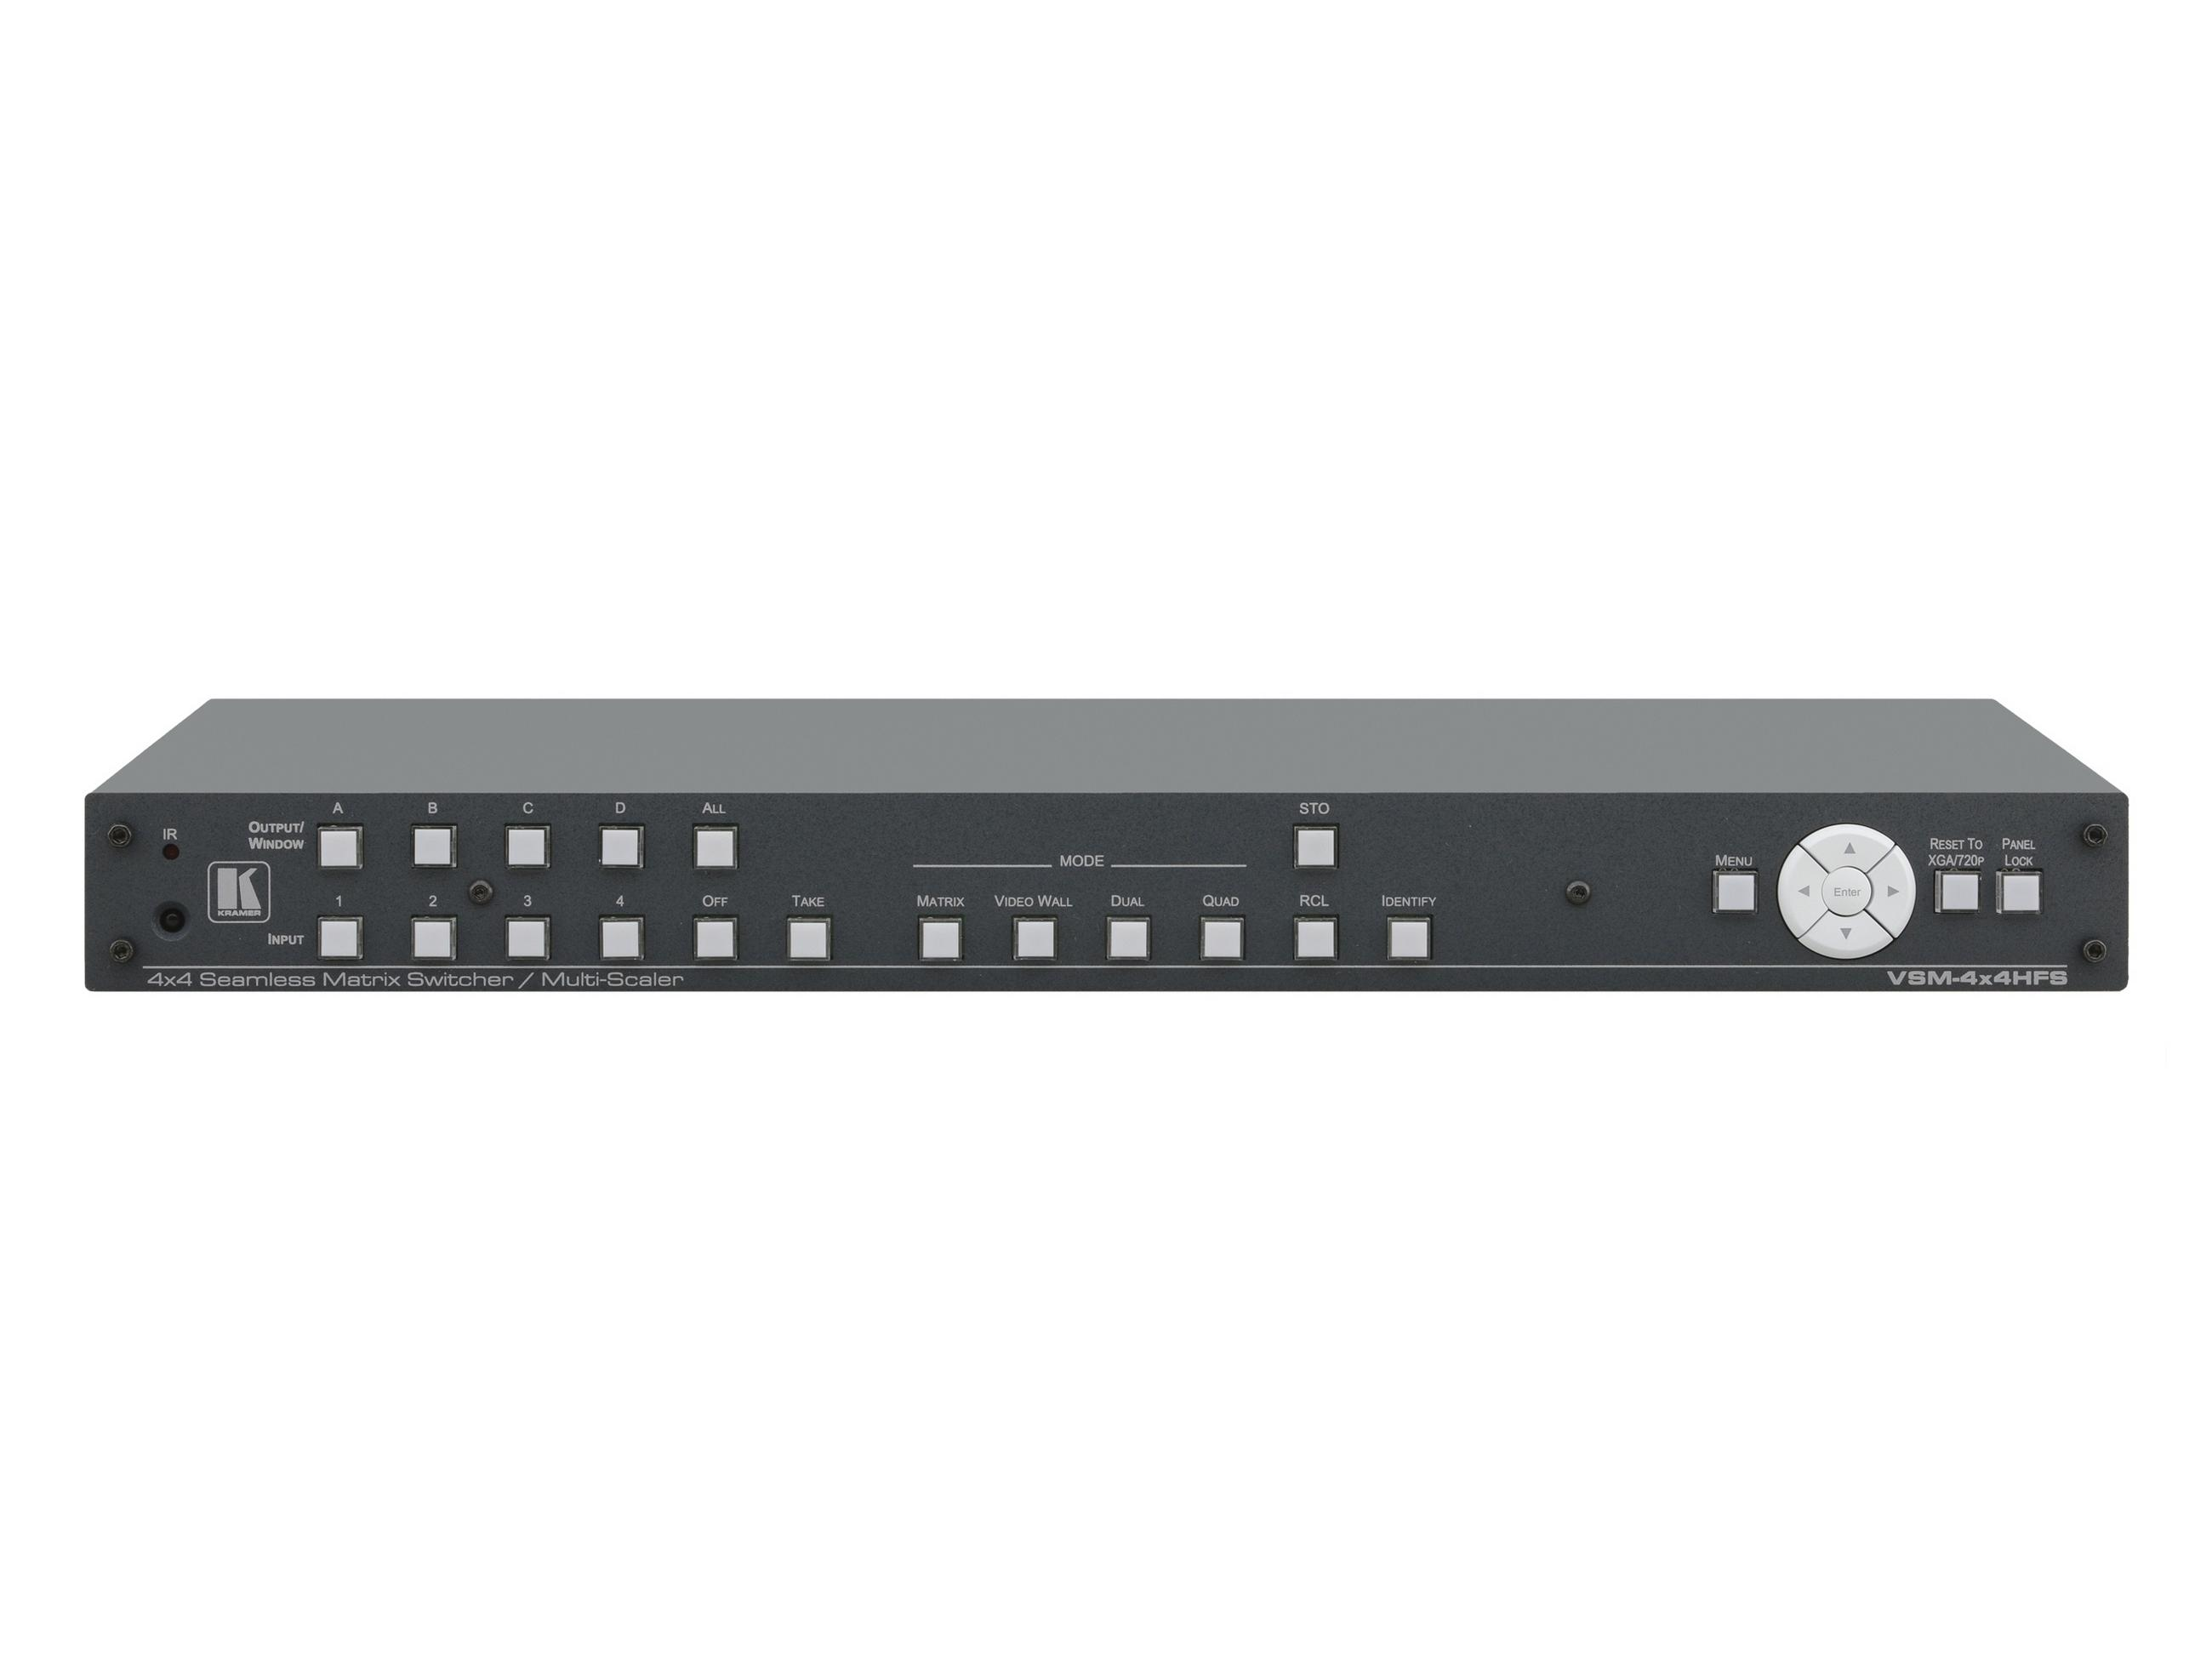 Details about Kramer VSM-4x4HFS 4x4 Seamless Matrix  Switcher/Multi-Scaler/2x2 Video Wall